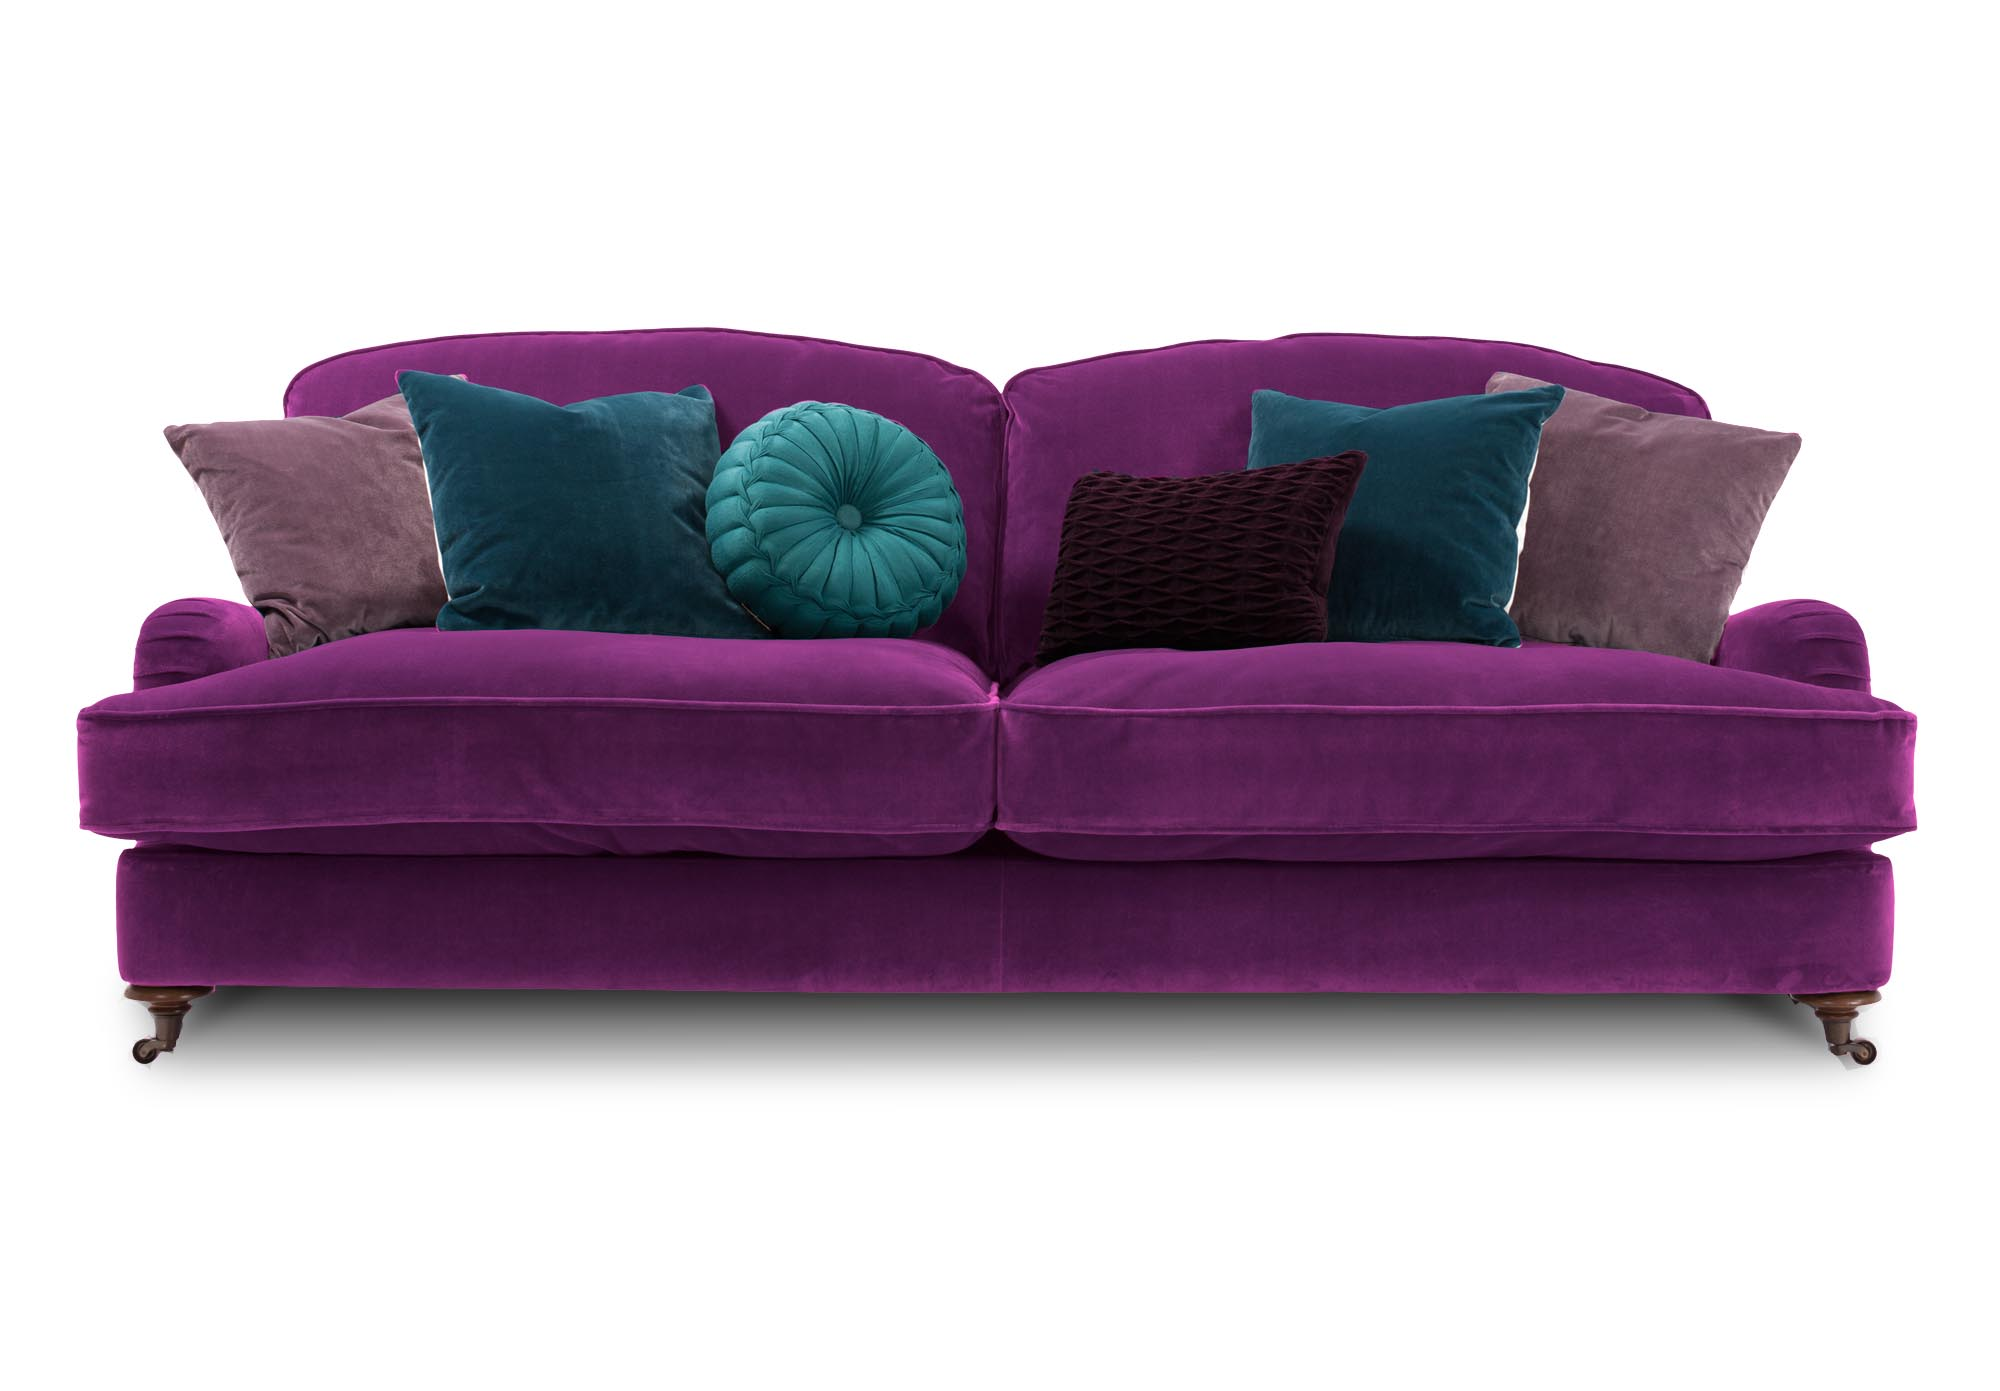 Harlequin isabelle 3 seater sofa from furniture village for Purple sofa